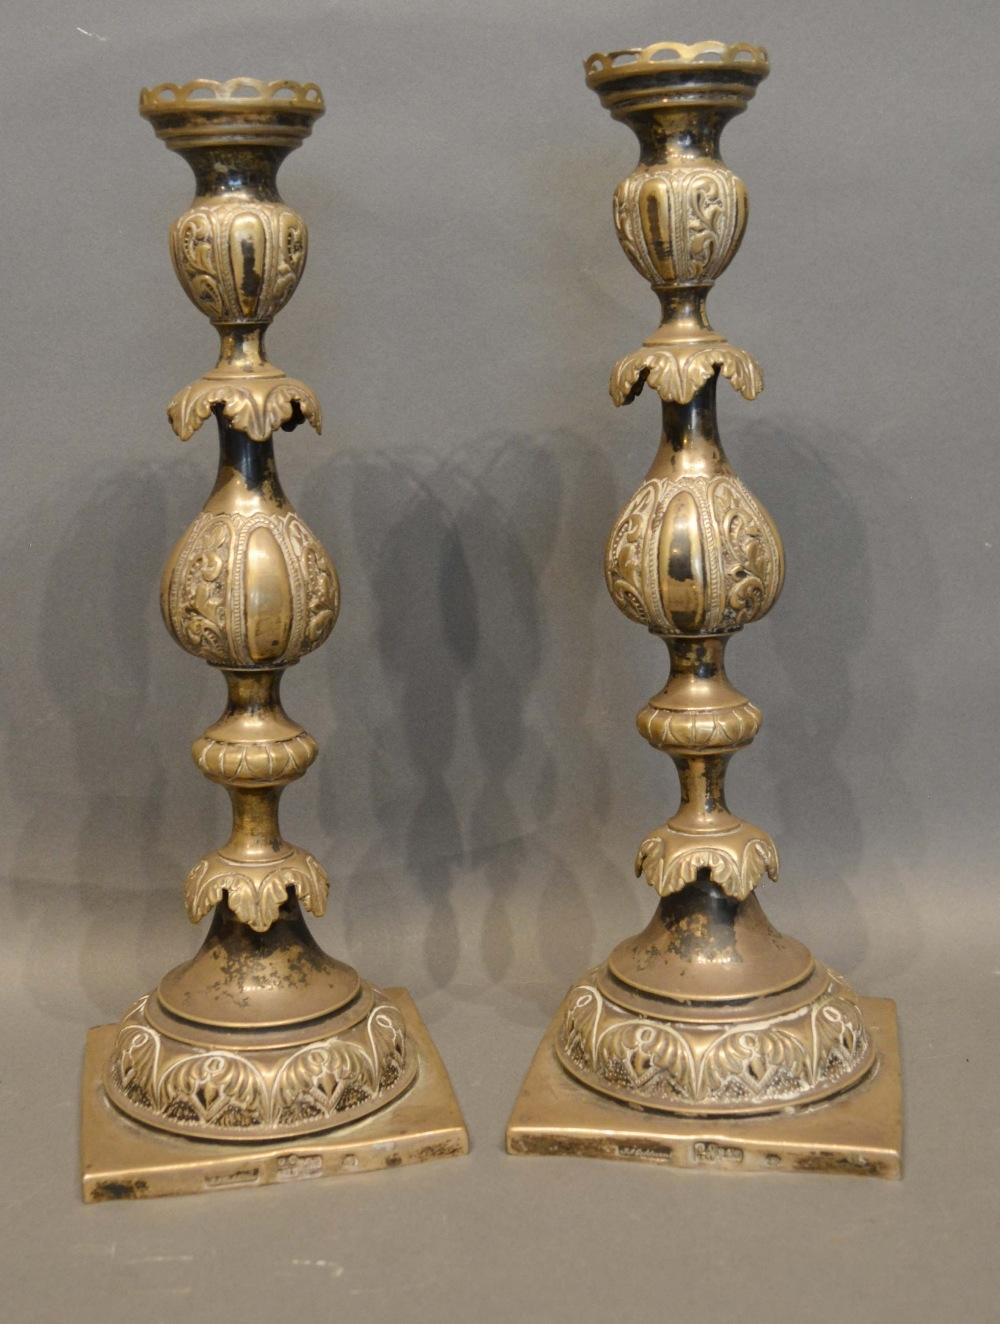 Lot 187 - A Pair of Russian Silver Candlesticks by JA Goldman, St Petersburg, 1874, with floral engraved